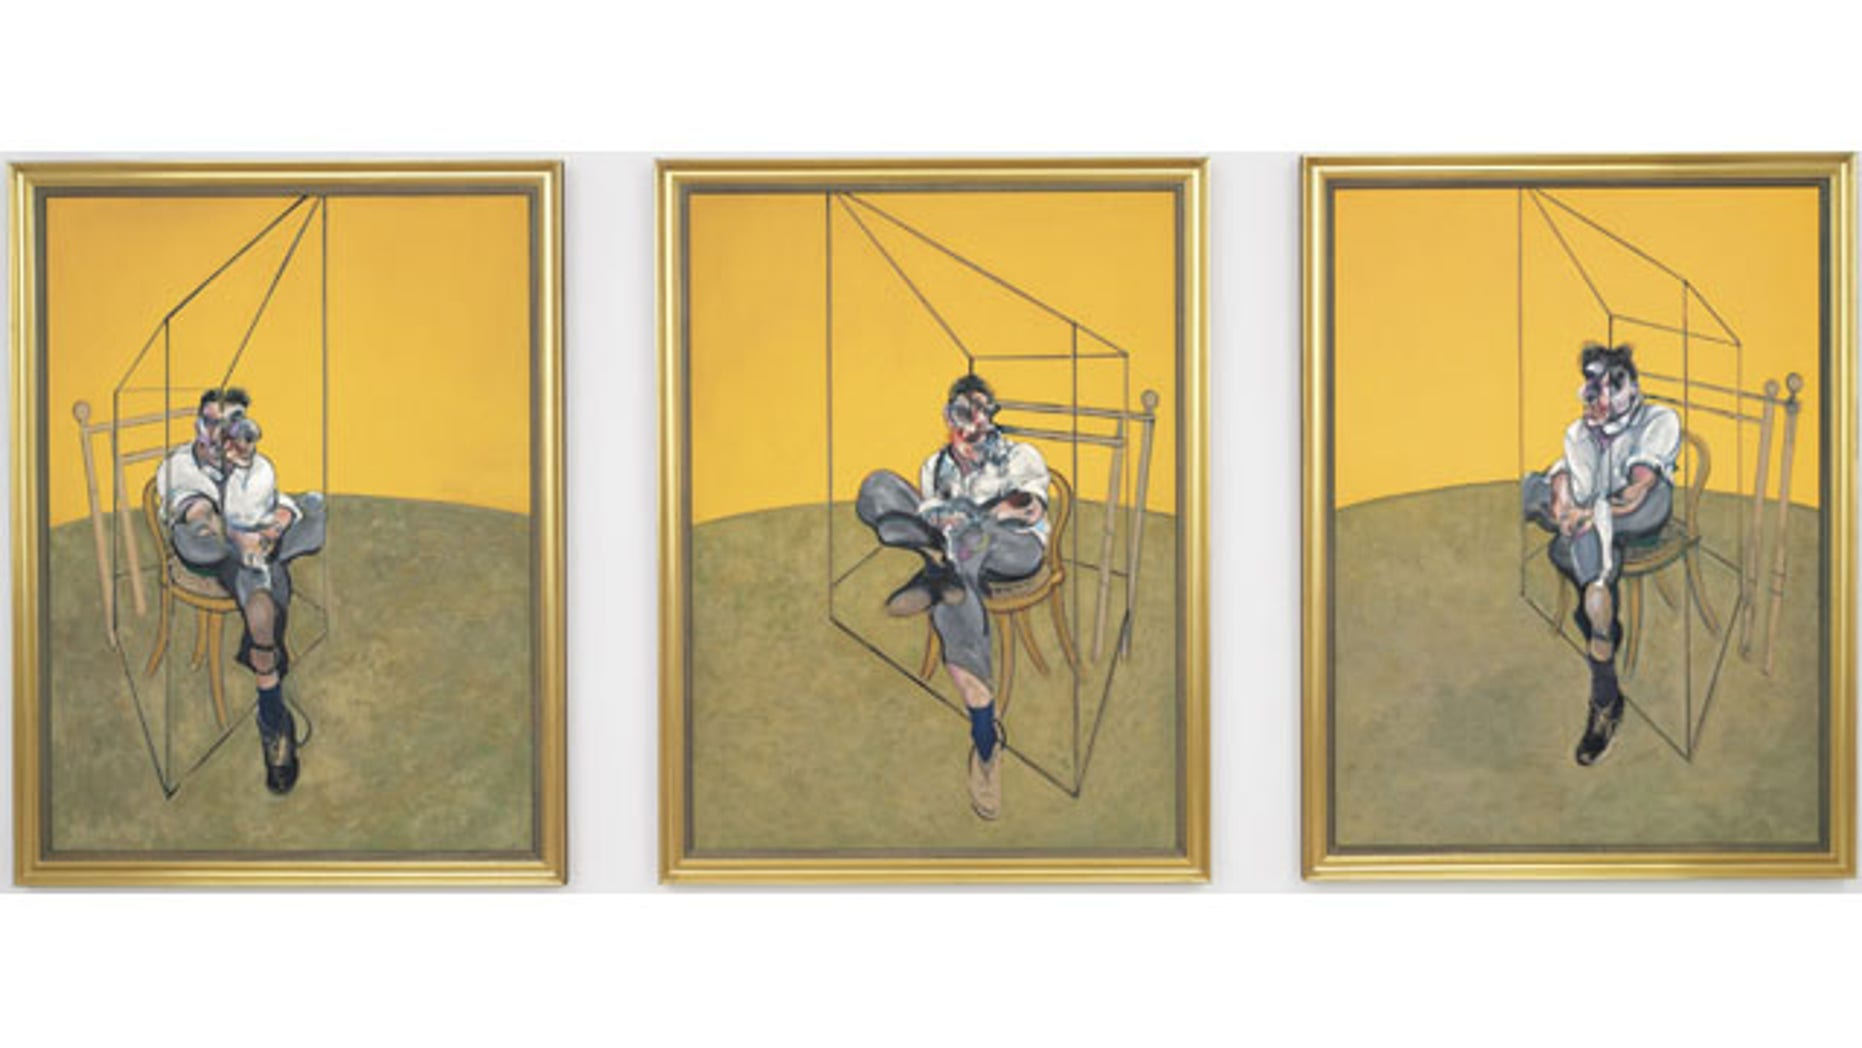 """This undated photo provided by Christie's shows """"Three Studies of Lucian Freud,"""" a triptych by Francis Bacon of his friend and artist Lucian Freud. The painting was sold for $142.4 million to an unidentified buyer Tuesday, making it the most expensive painting ever sold at auction  (AP Photo/Christie's)"""